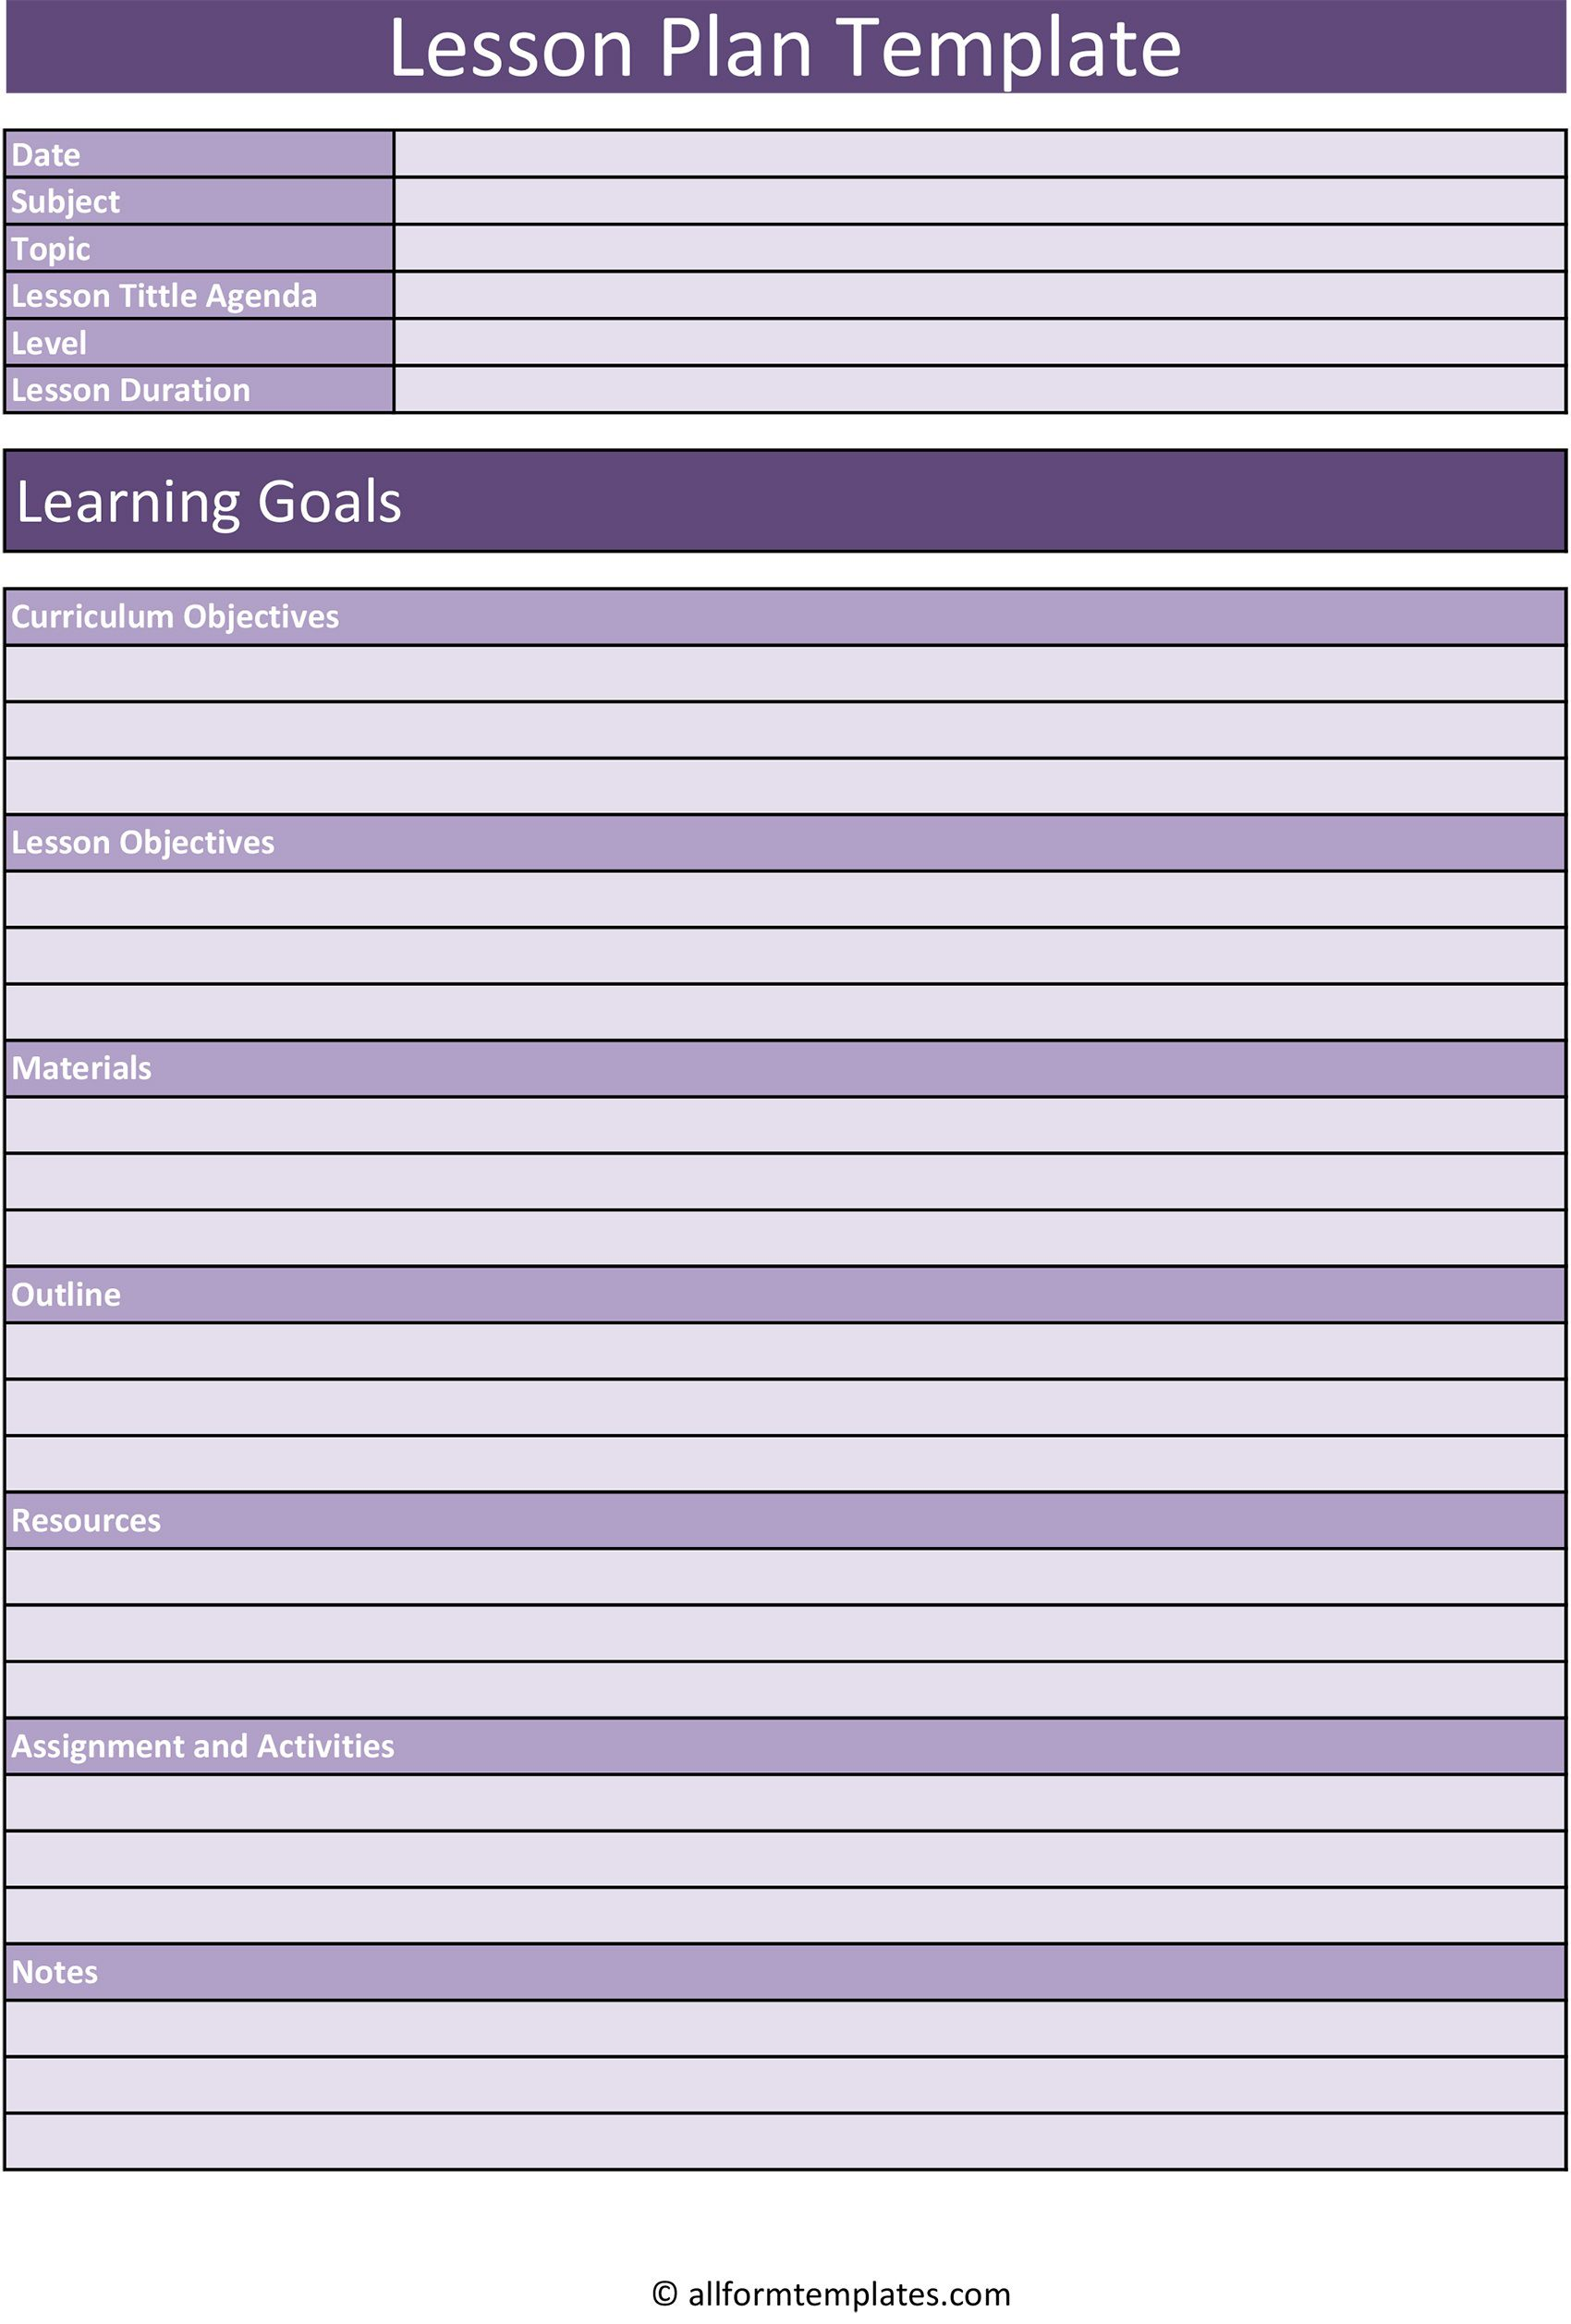 007 Stupendou Lesson Plan Template Excel Free Highest Clarity Full